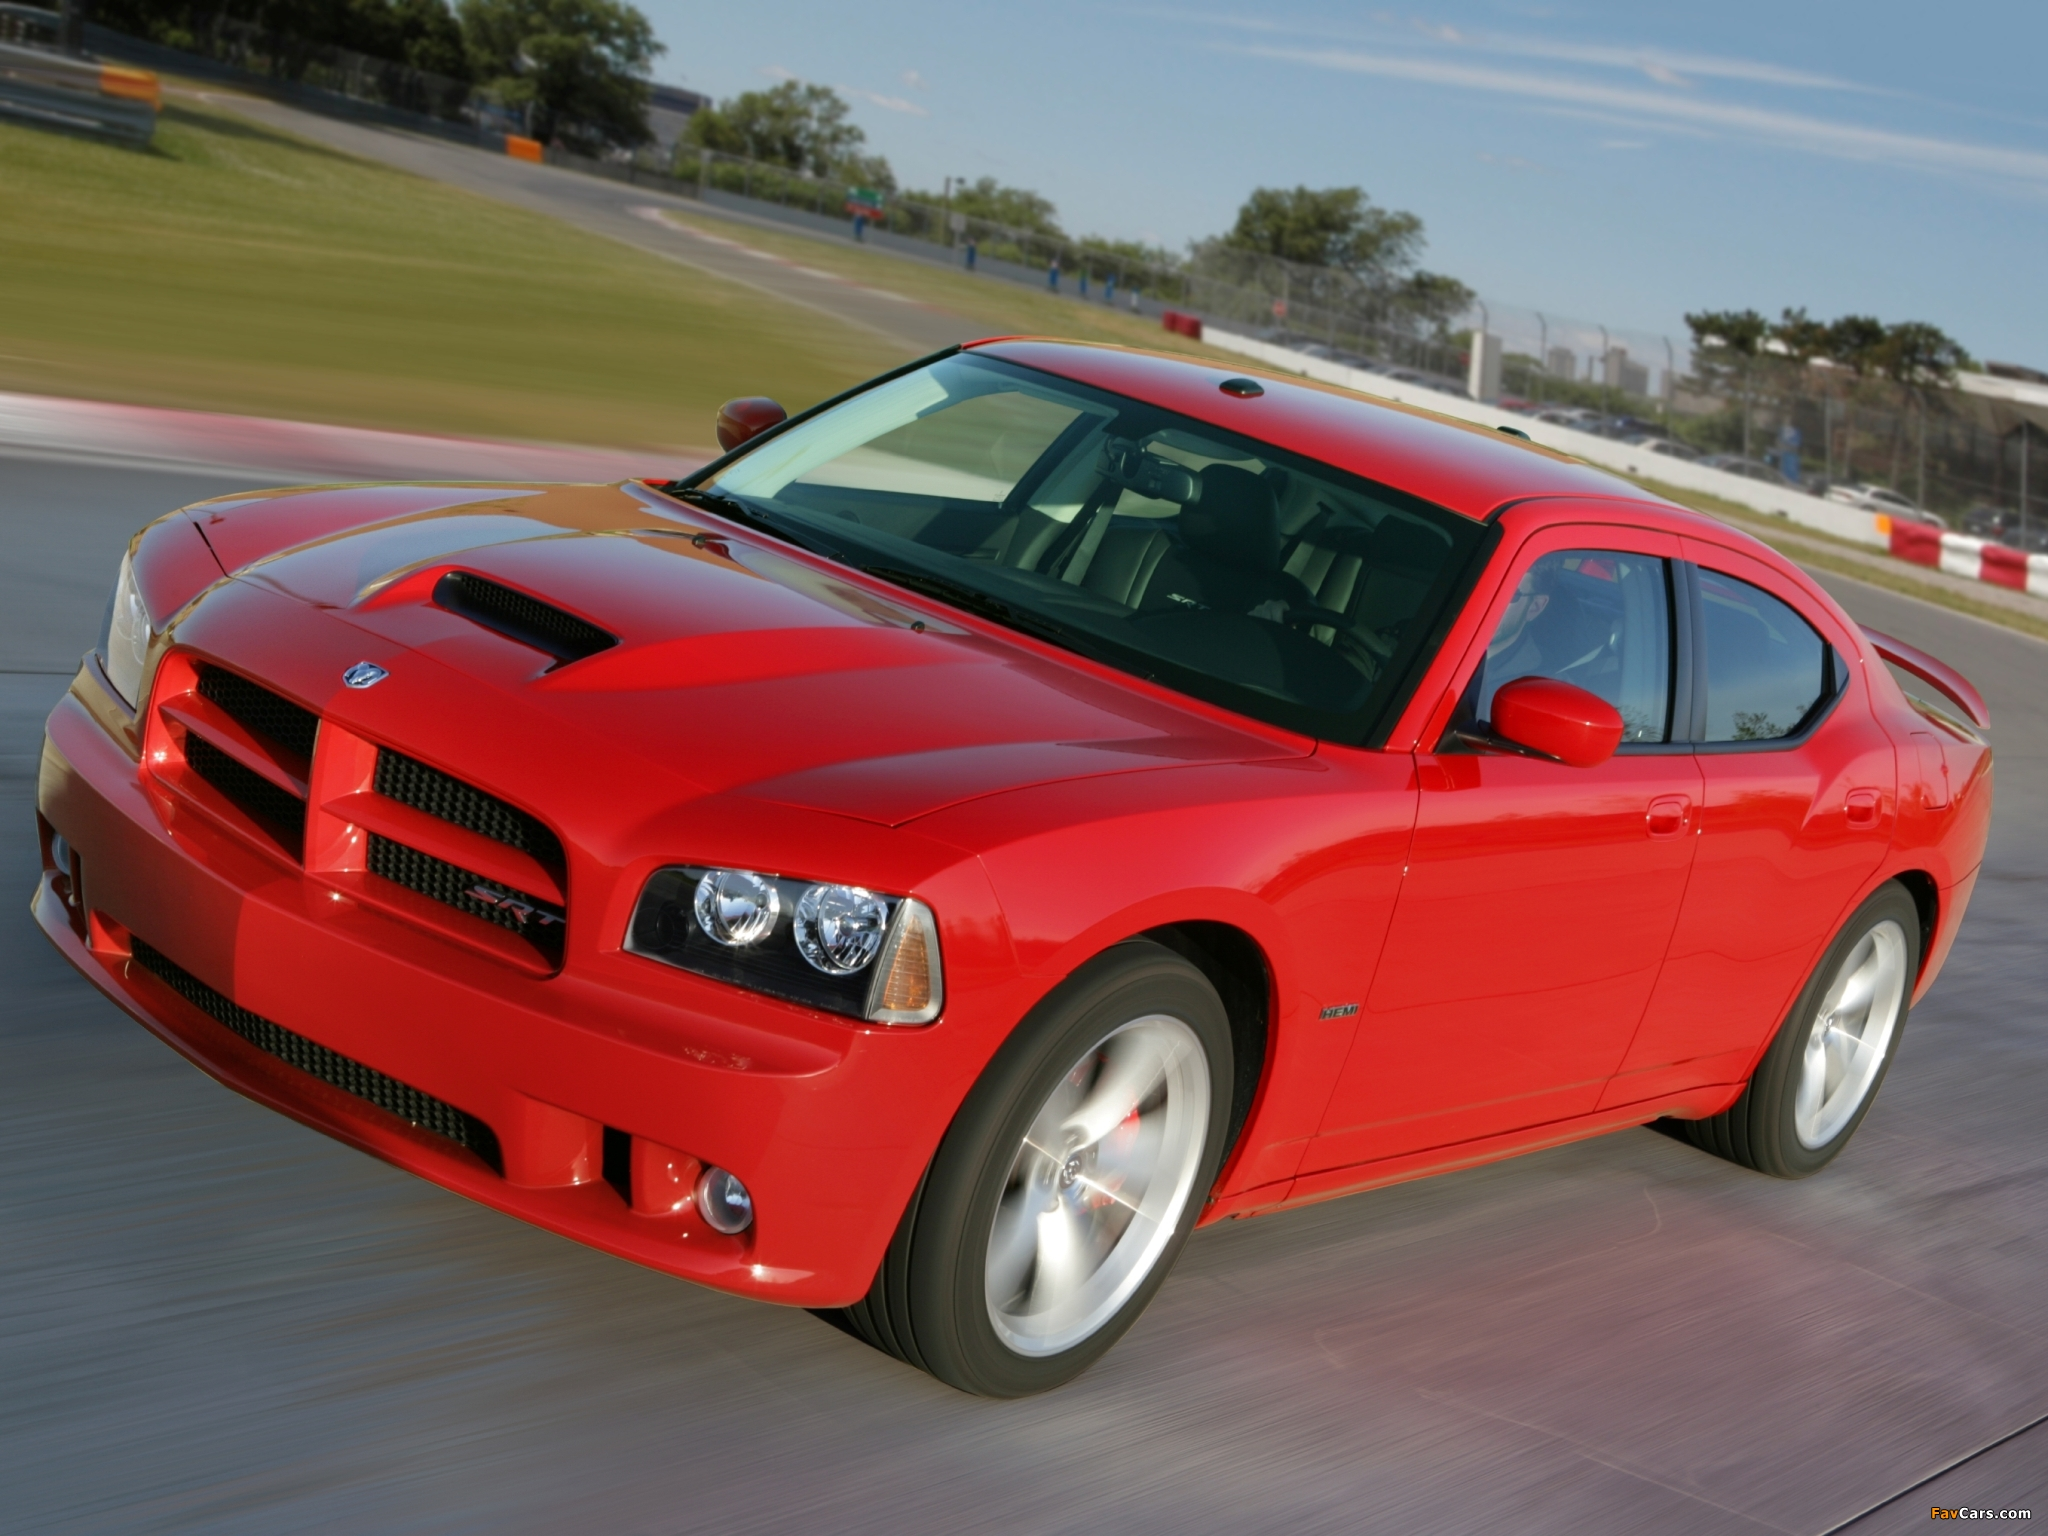 Dodge Charger Srt8 2005 10 Pictures 2048x1536